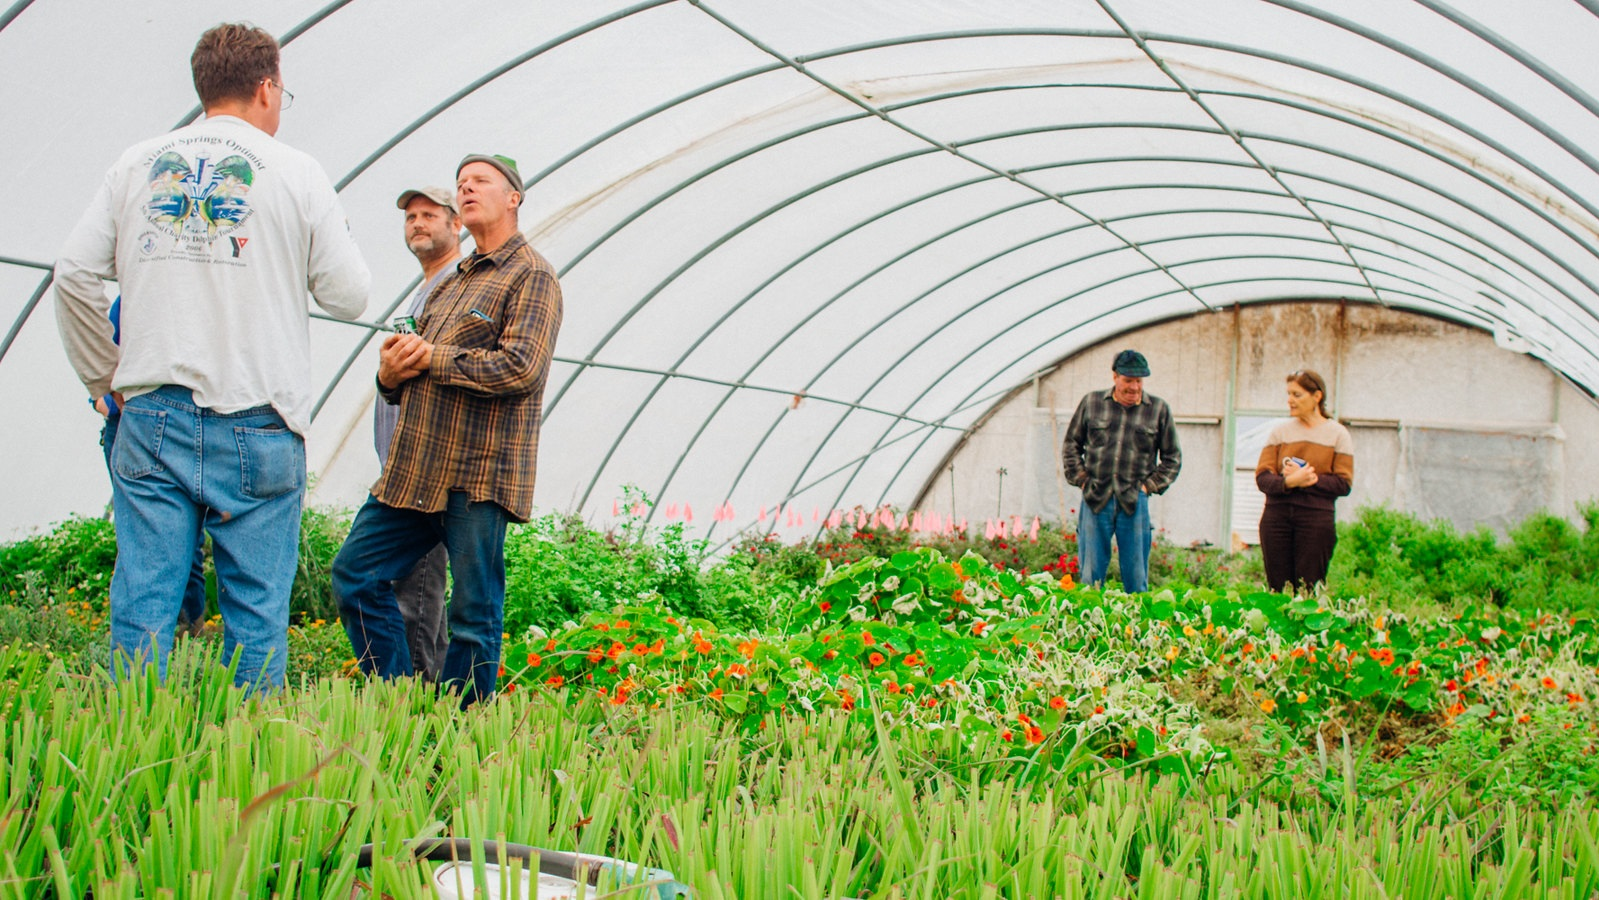 Farm Tour Aug 11 - On August 11, from 9 am to 5 pm, visit Boise Farmers Market farms and see where your food is grown.